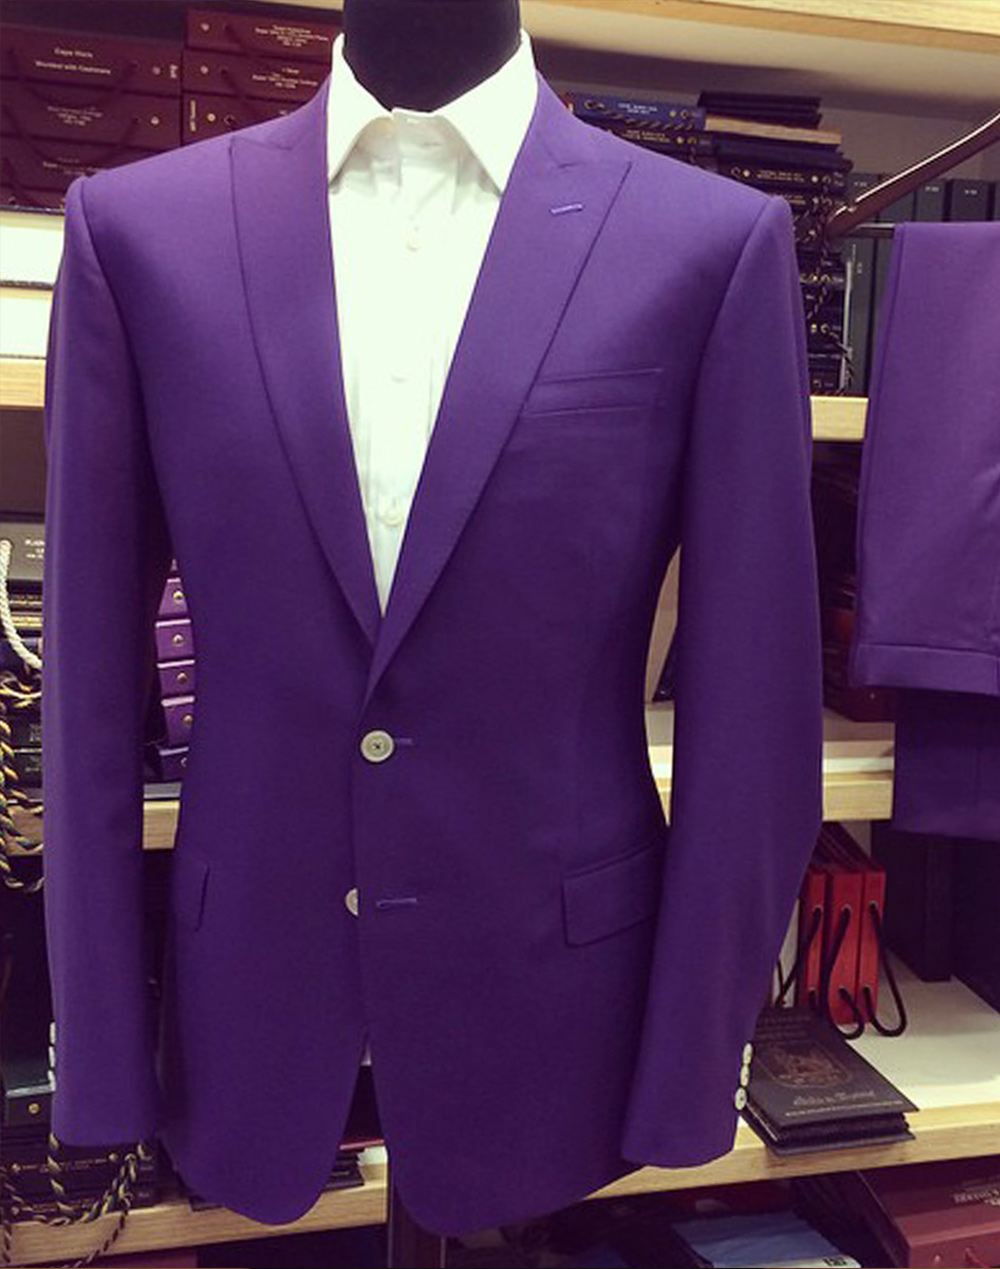 2019 best excellent quality online store Bespoke Suits | Bespoke Tailoring | Hand crafted bespoke suits